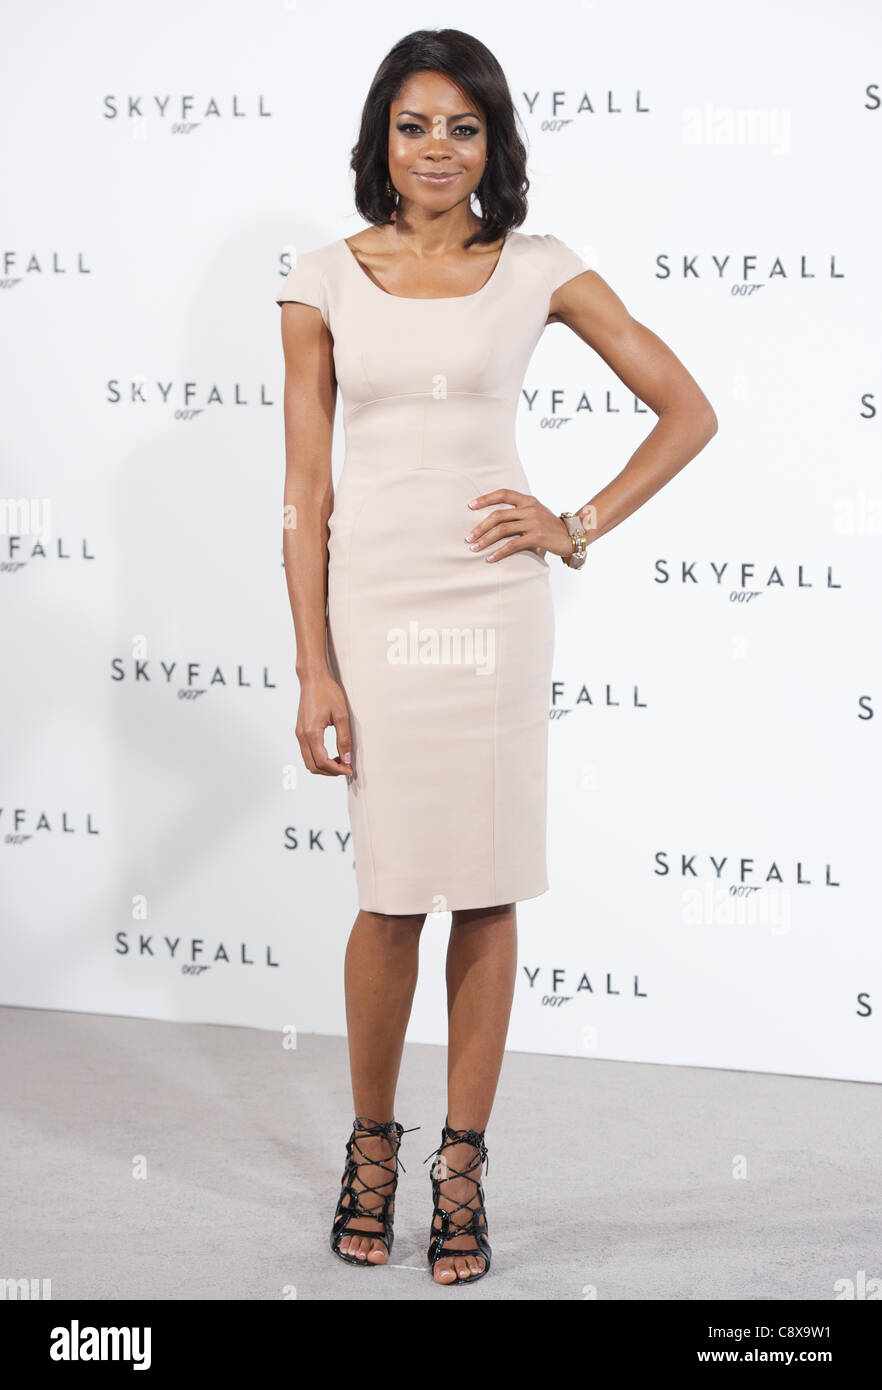 LONDON, UNITED KINGDOM 3 NOVEMBER 2011: Pic Shows Naomie Harris  at the launch photo call of the new Bond film called - Stock Image